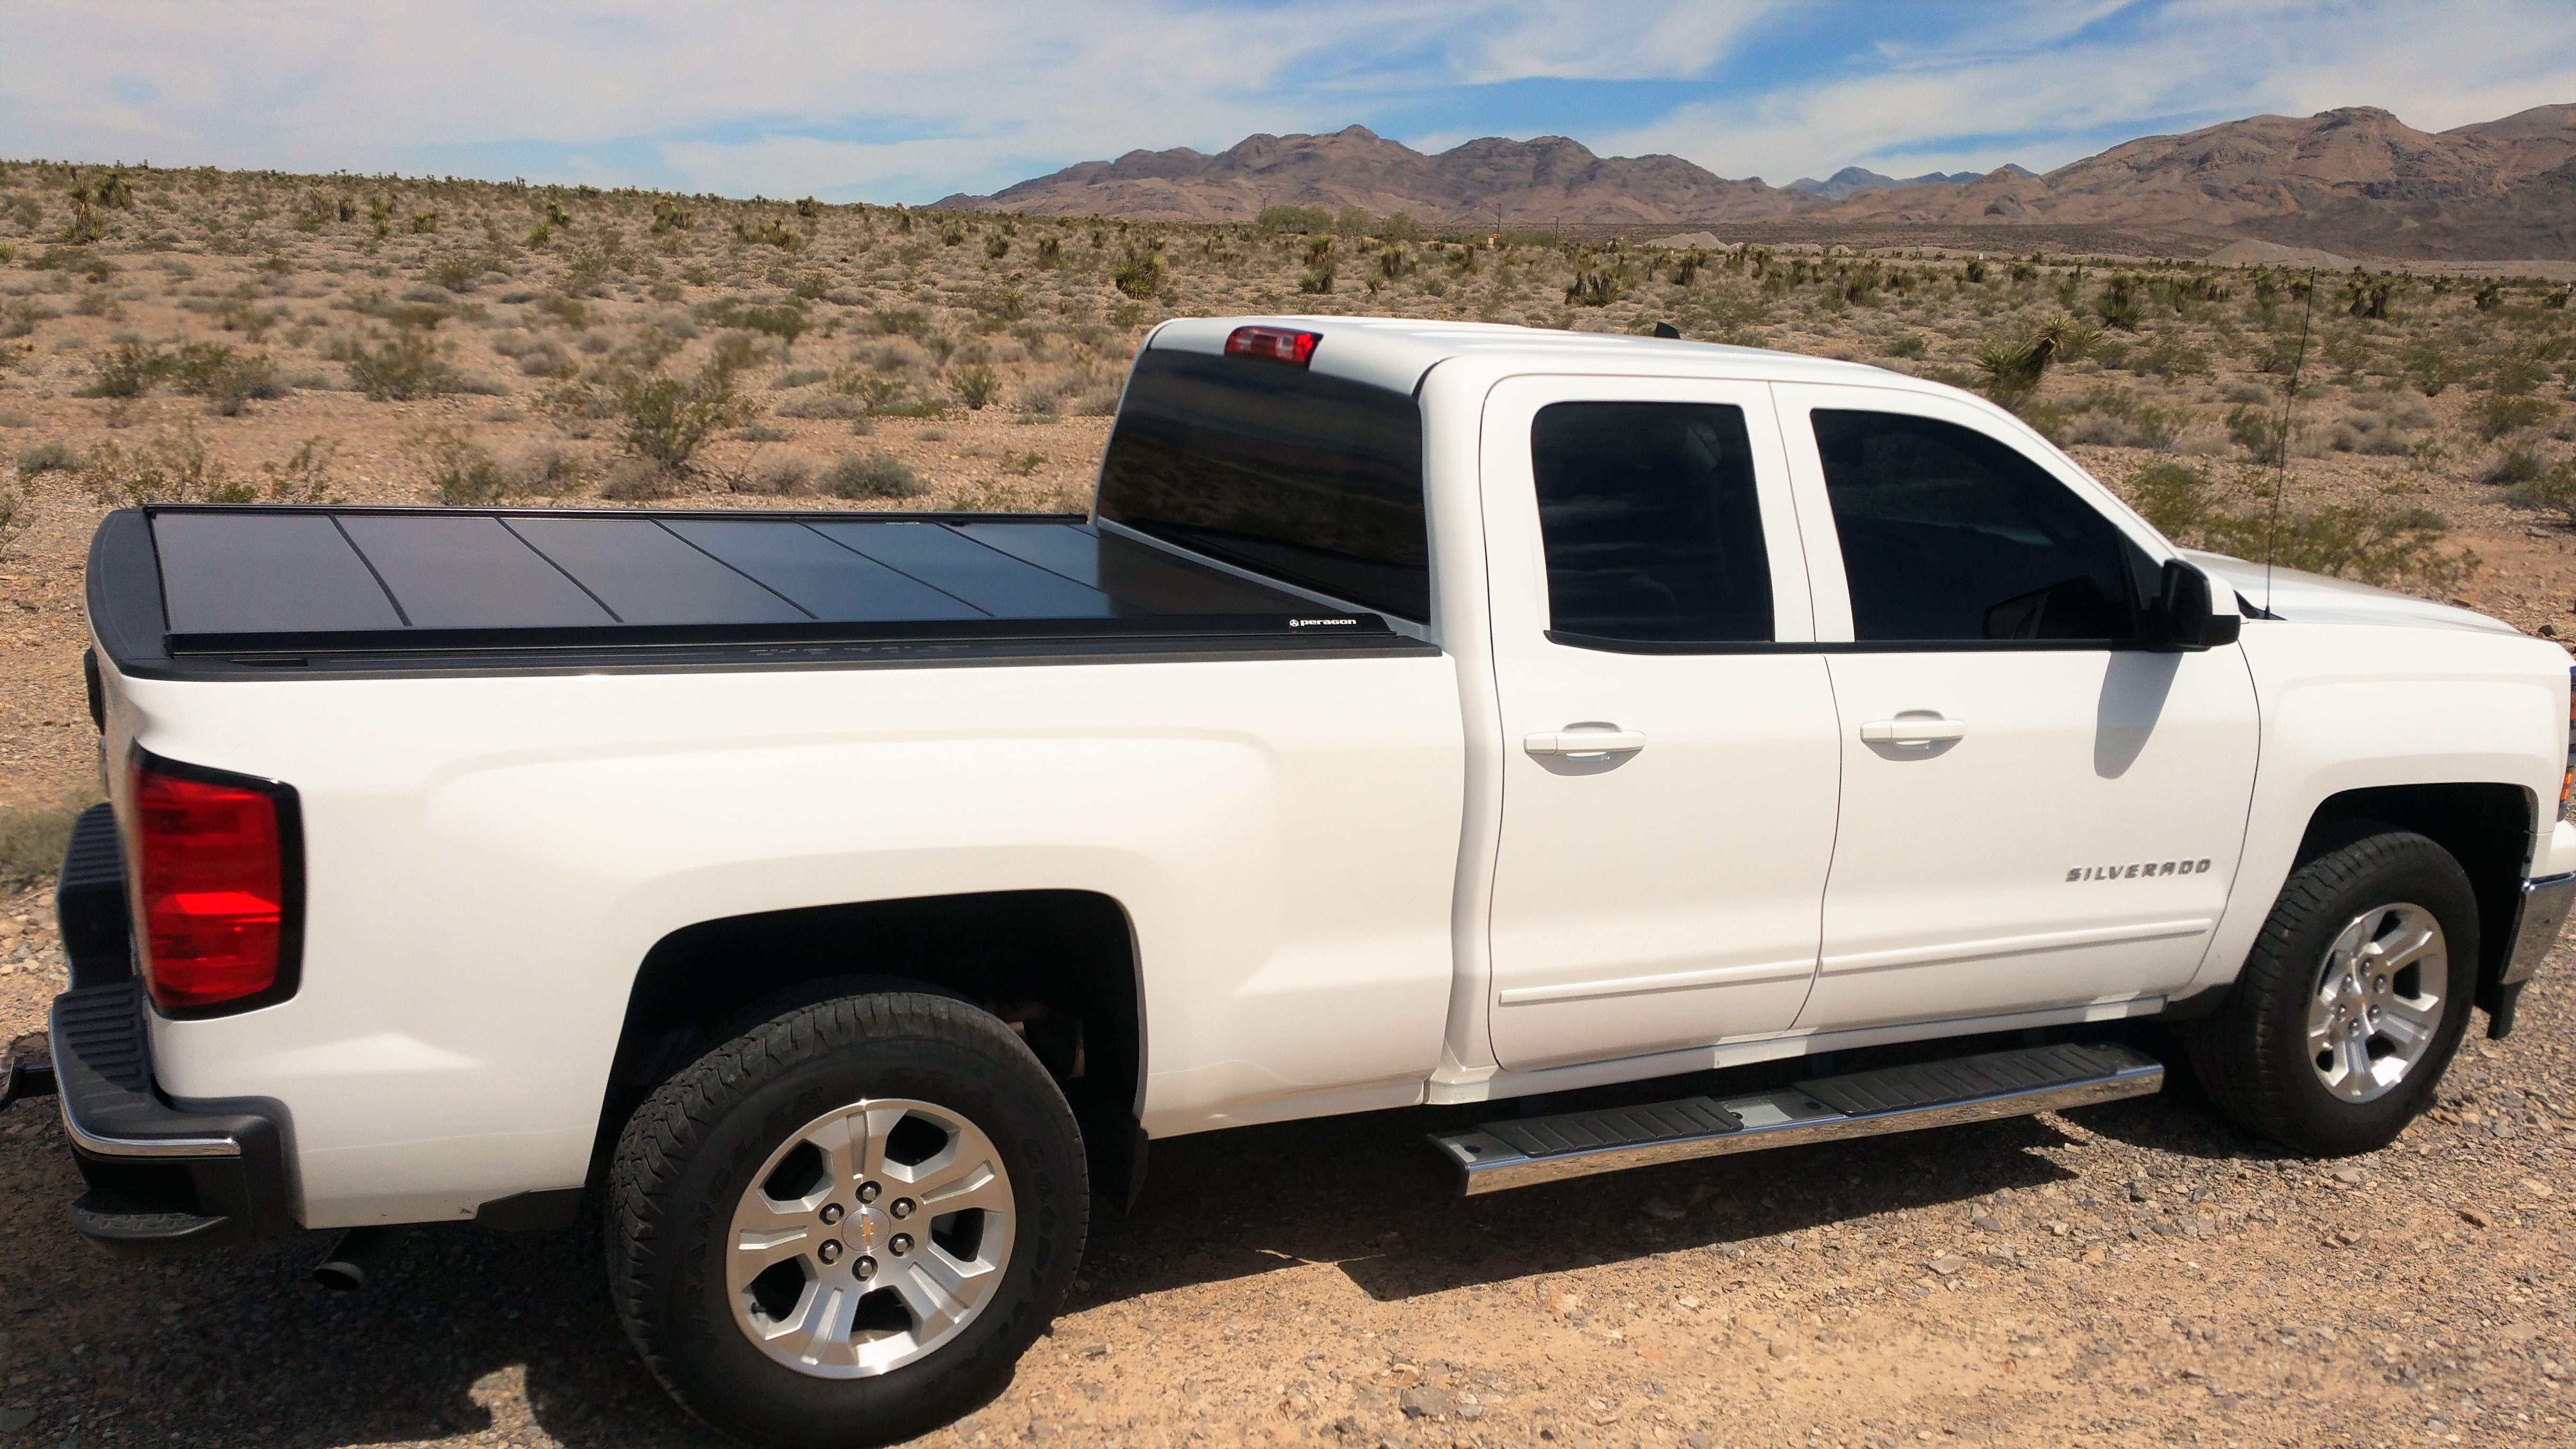 resistant tonneau downloadspermalink truck viewsdownloads great crowd clamp around polycarbonate cover coversgallery retraxone protected pickup bed retractable wheel painted originalviews action uv covers impact with look circle red